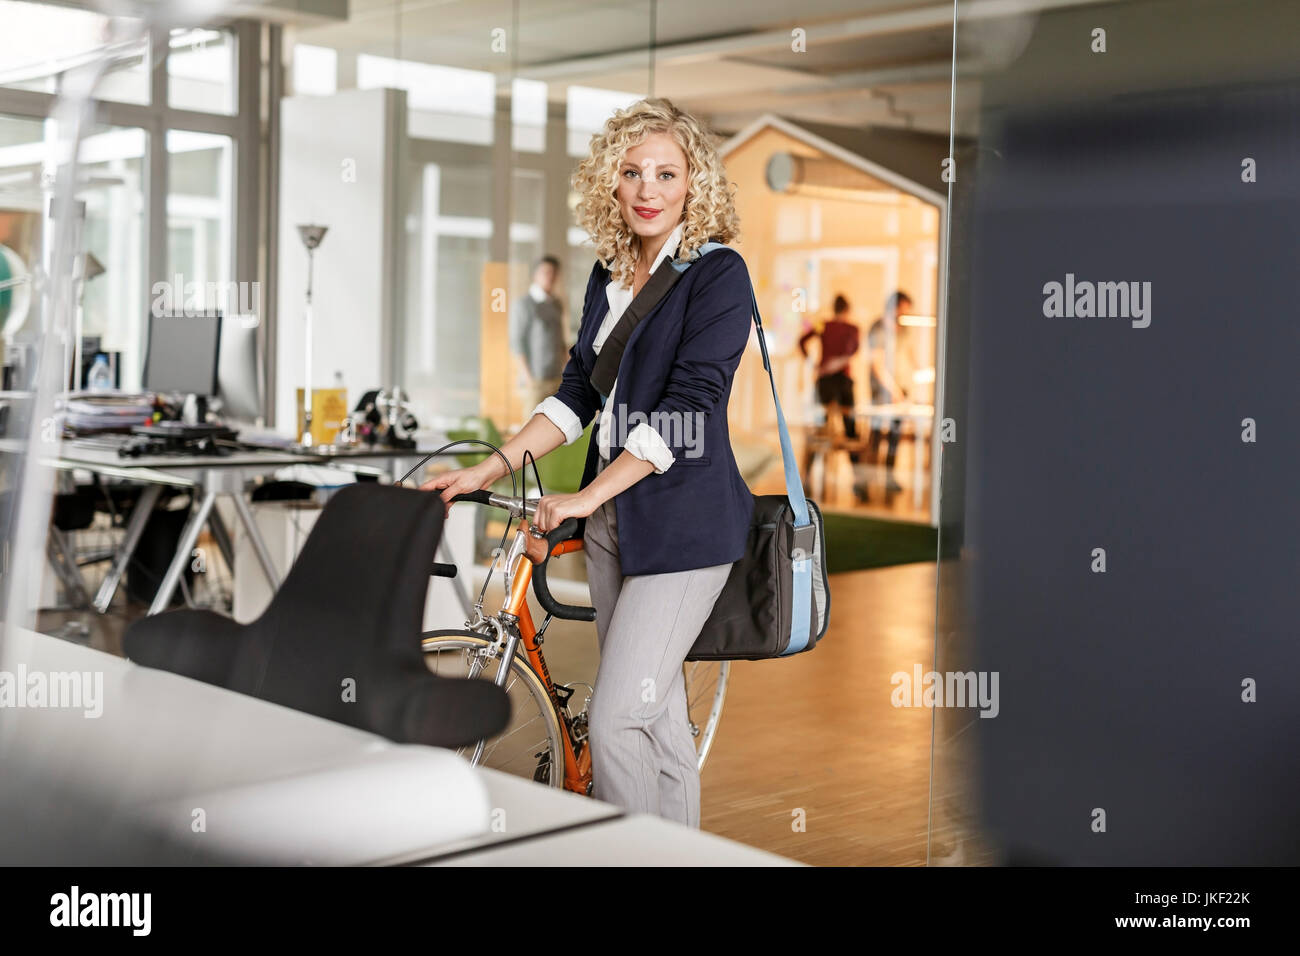 Portrait of woman with bicycle in office - Stock Image